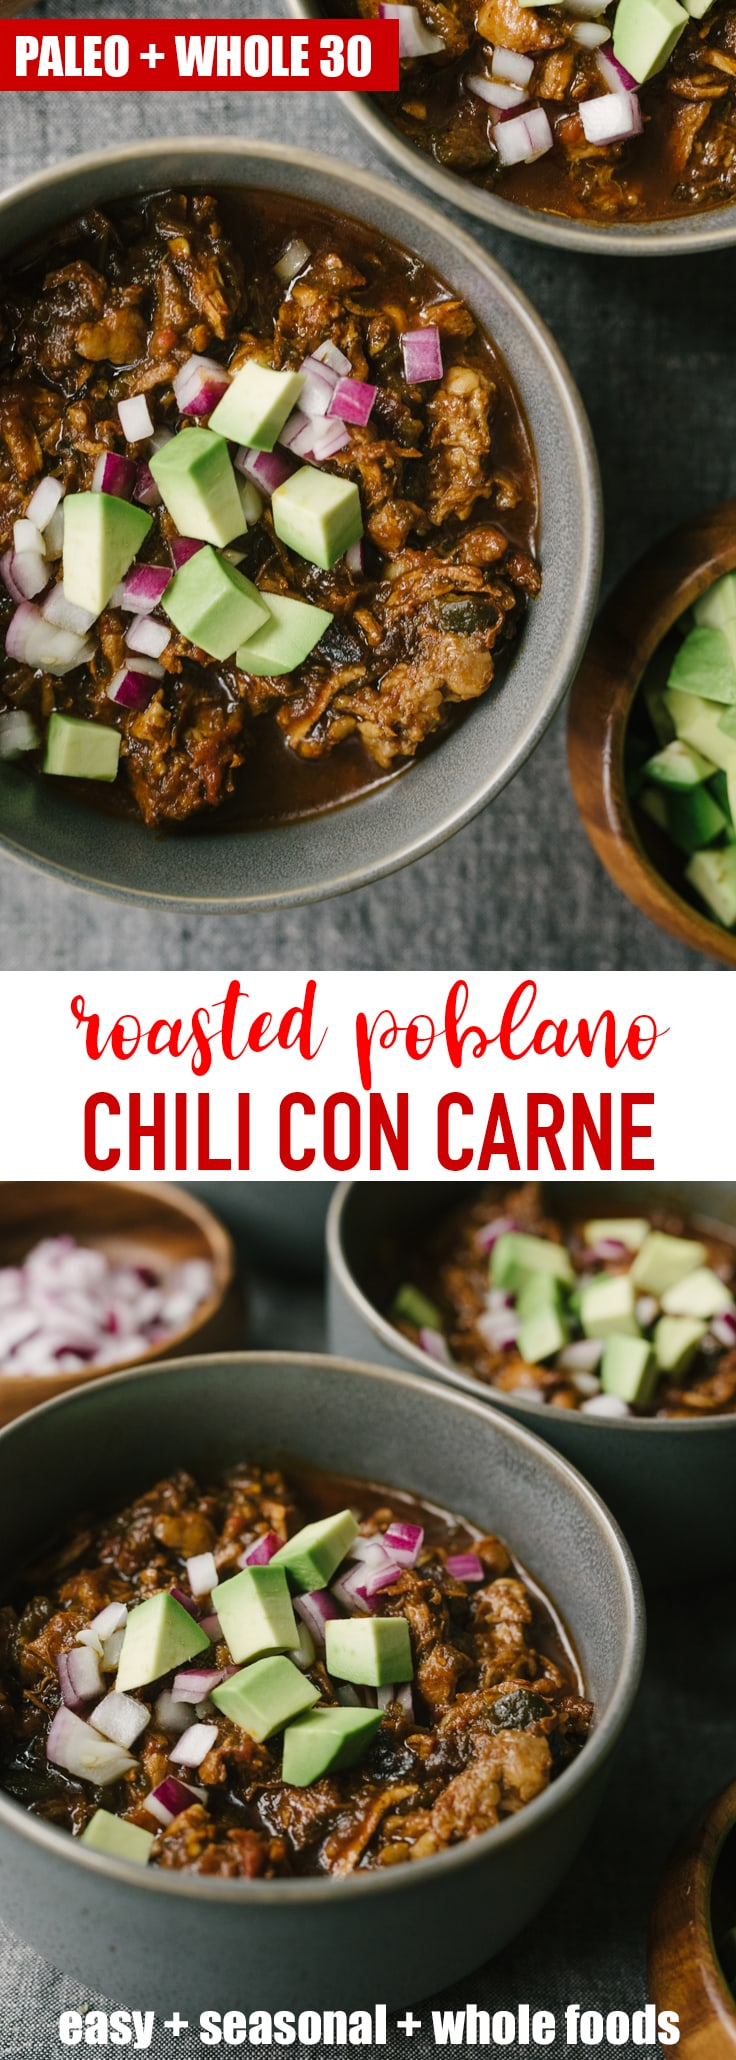 This recipe for paleo chili con carne is a rich and bone-warming addition to your cold weather rotation. This version is slowly simmered with poblanos, jalapeños, and an adjustable spice blend until the meat is fall-apart tender. It's a paleo and whole 30 compliant crowd-pleaser! #wholefood #realfood #paleo #whole30